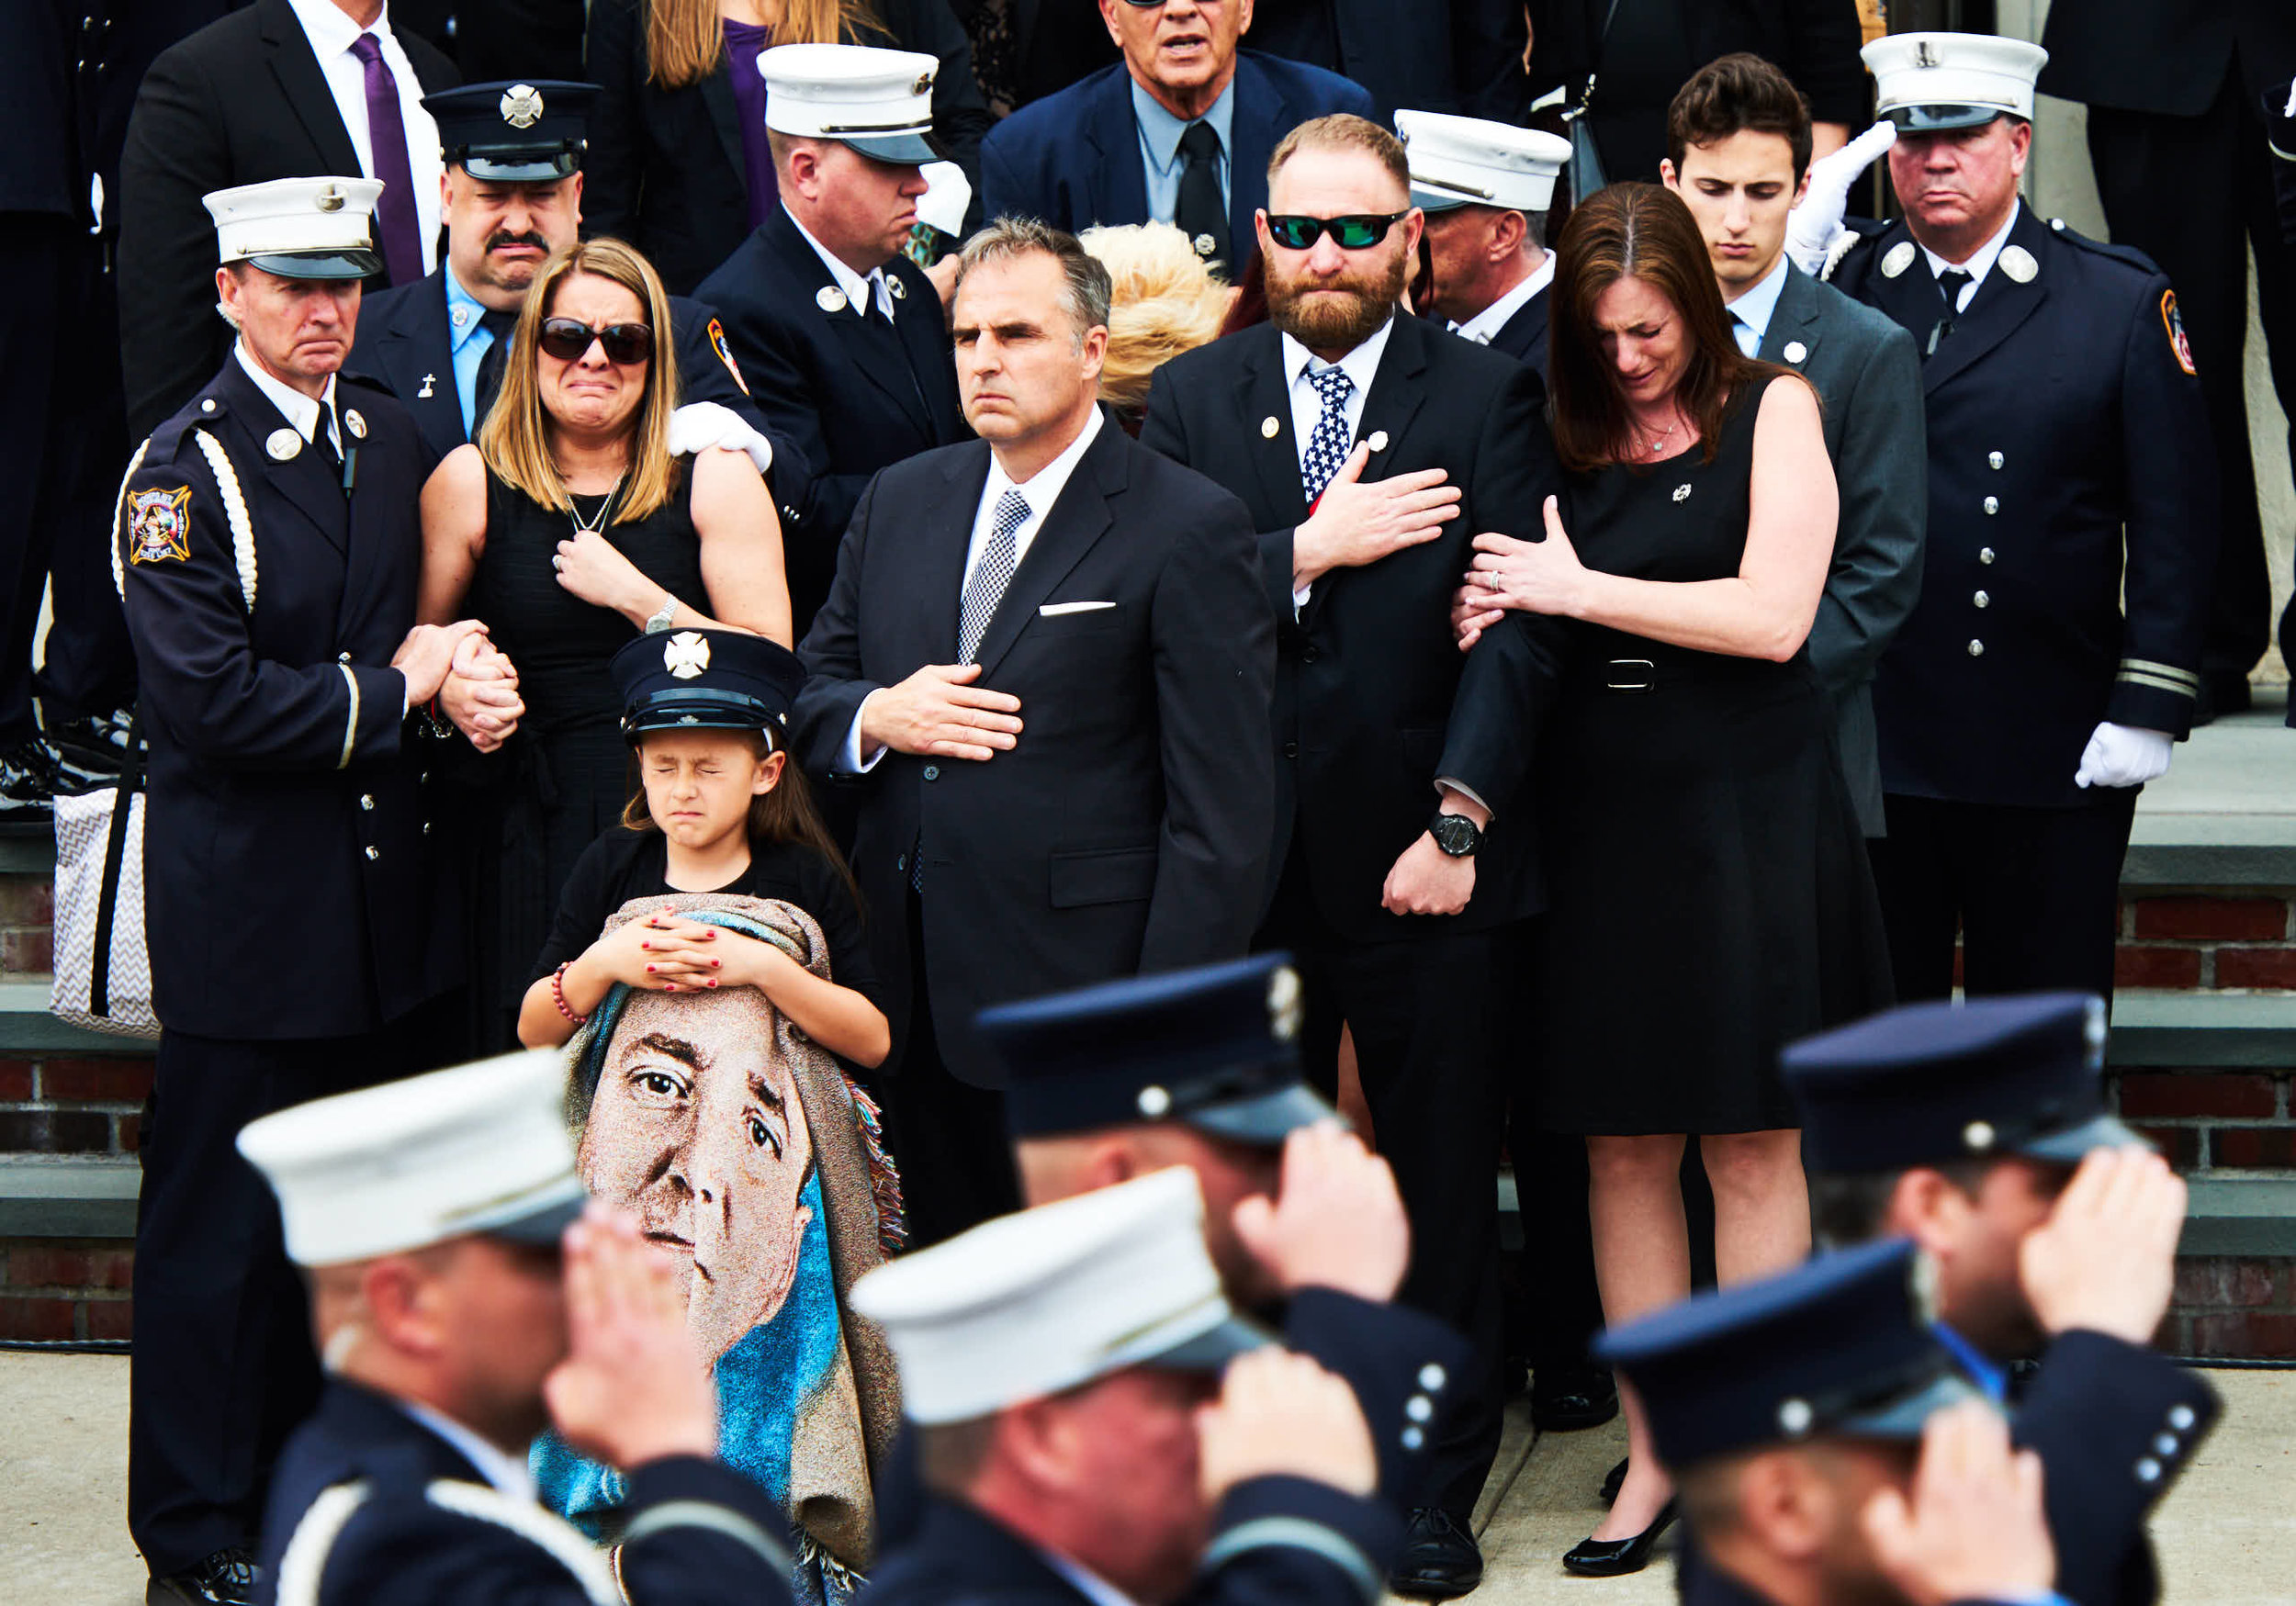 Marie Tolley, 2nd from left, the wife of fallen New York City firefighter William Tolley, and her daughter Isabella, 8, react as his casket is loaded onto a fire truck during his funeral on April 27, 2017 in Bethpage, N.Y. Tolley, a member of Ladder 135 Engine 286 in Glendale, and a Bethpage native, was killed while battling a blaze in Ridgewood, Queens, on April 20.